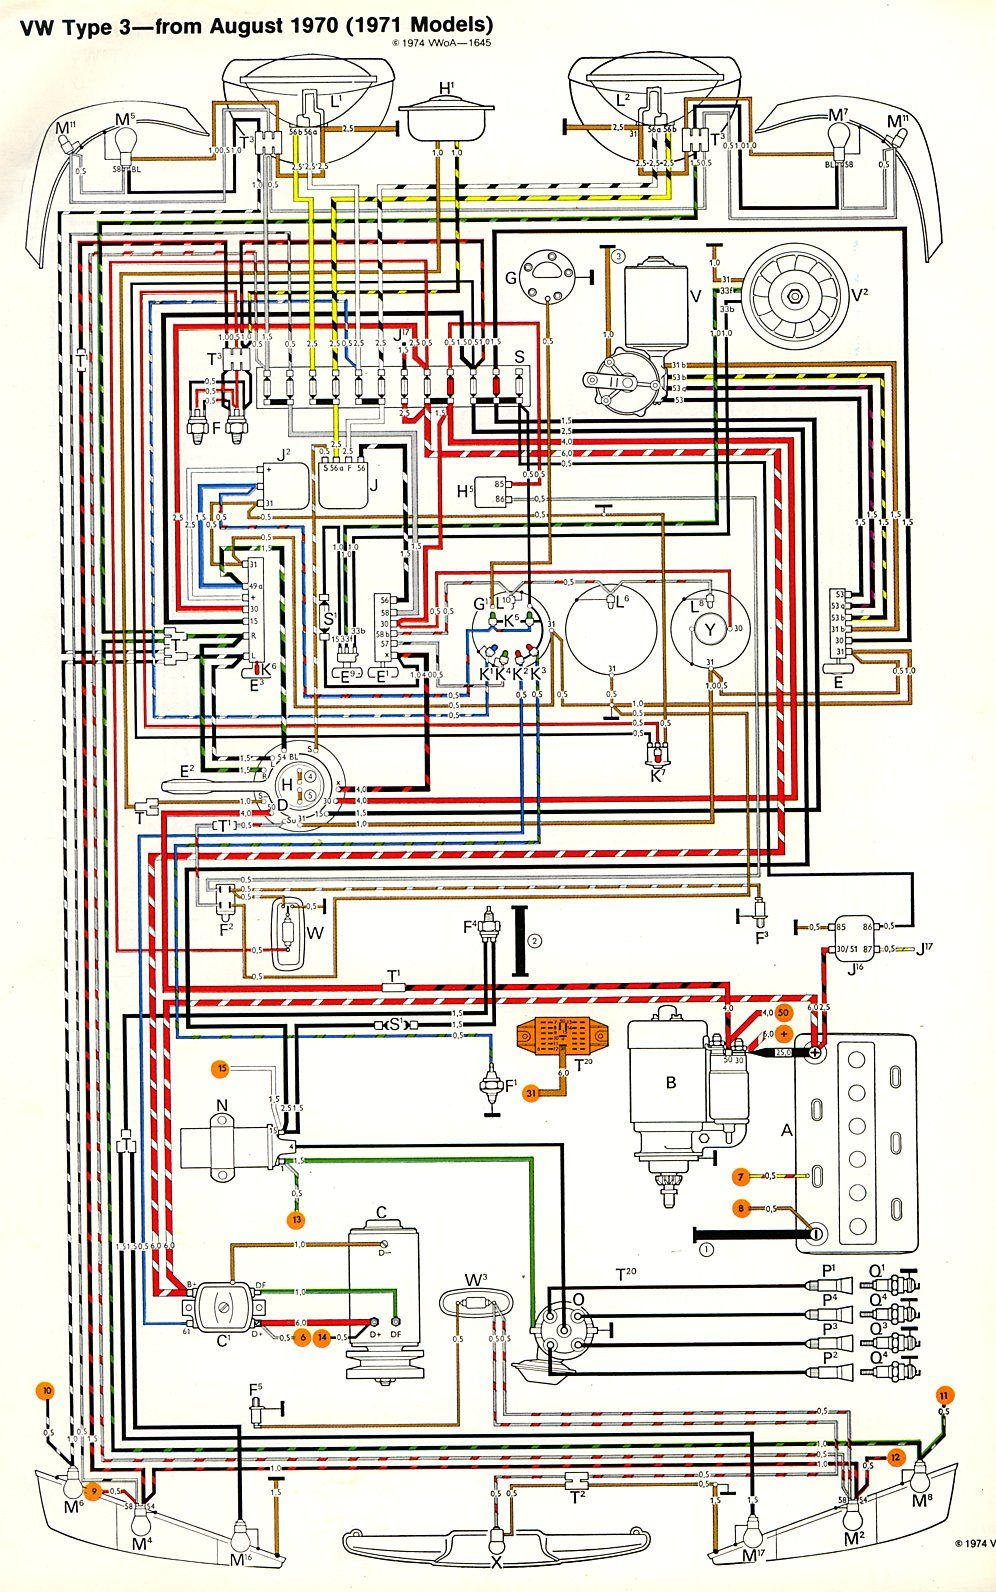 small resolution of 1971 type iii wiring diagram volkswagens electrical diagram vw